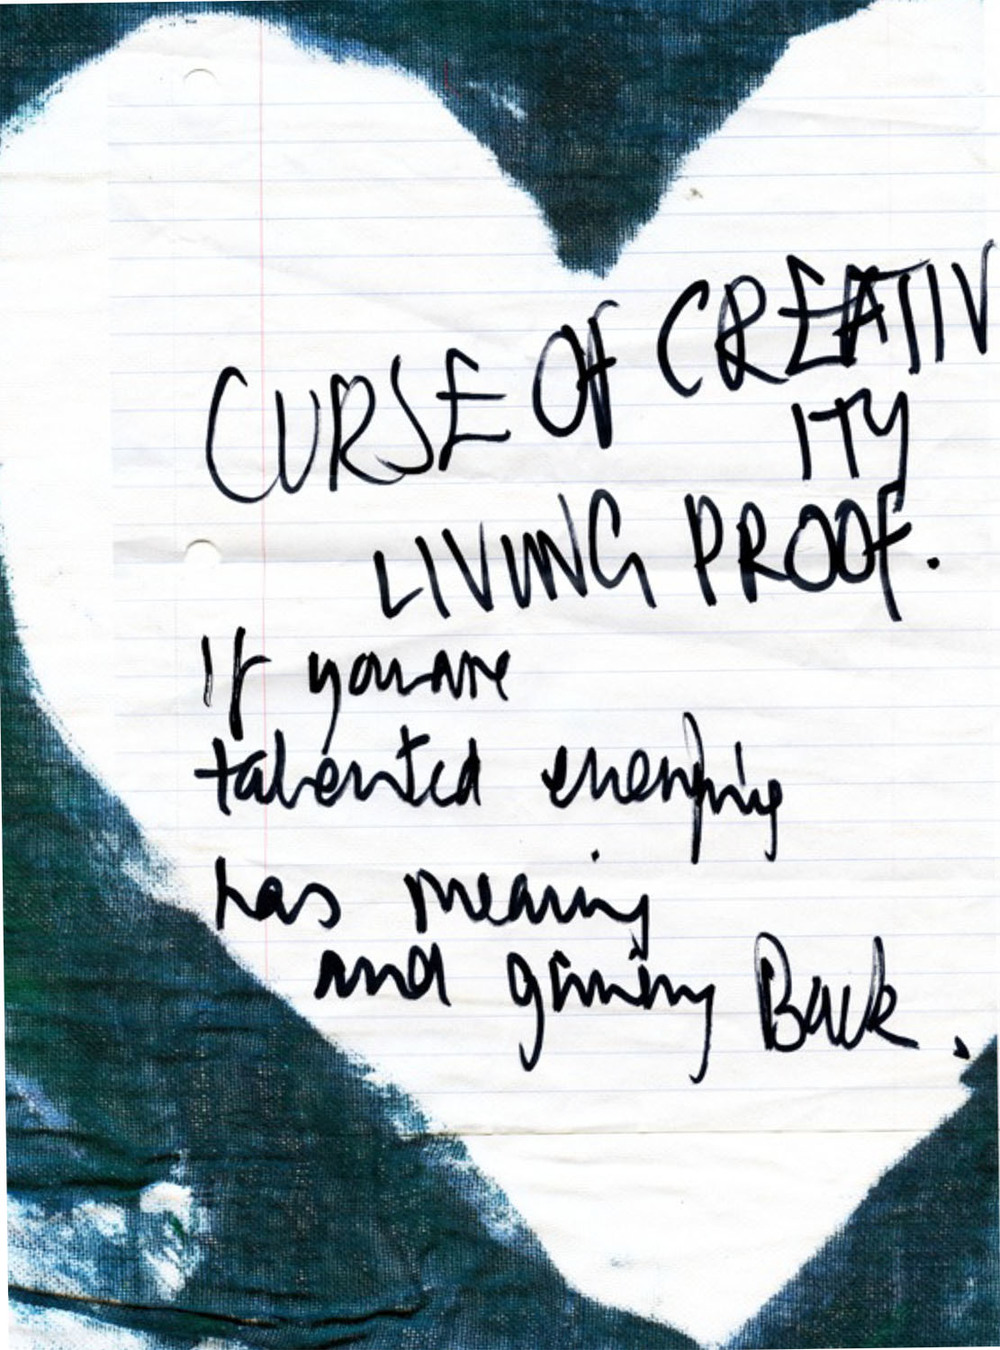 """When I leave Eric calls me back. He saids """"I saw your left hand..Beware of the curse of creativity. If you are talented, everything has meaning. You have to give back."""""""